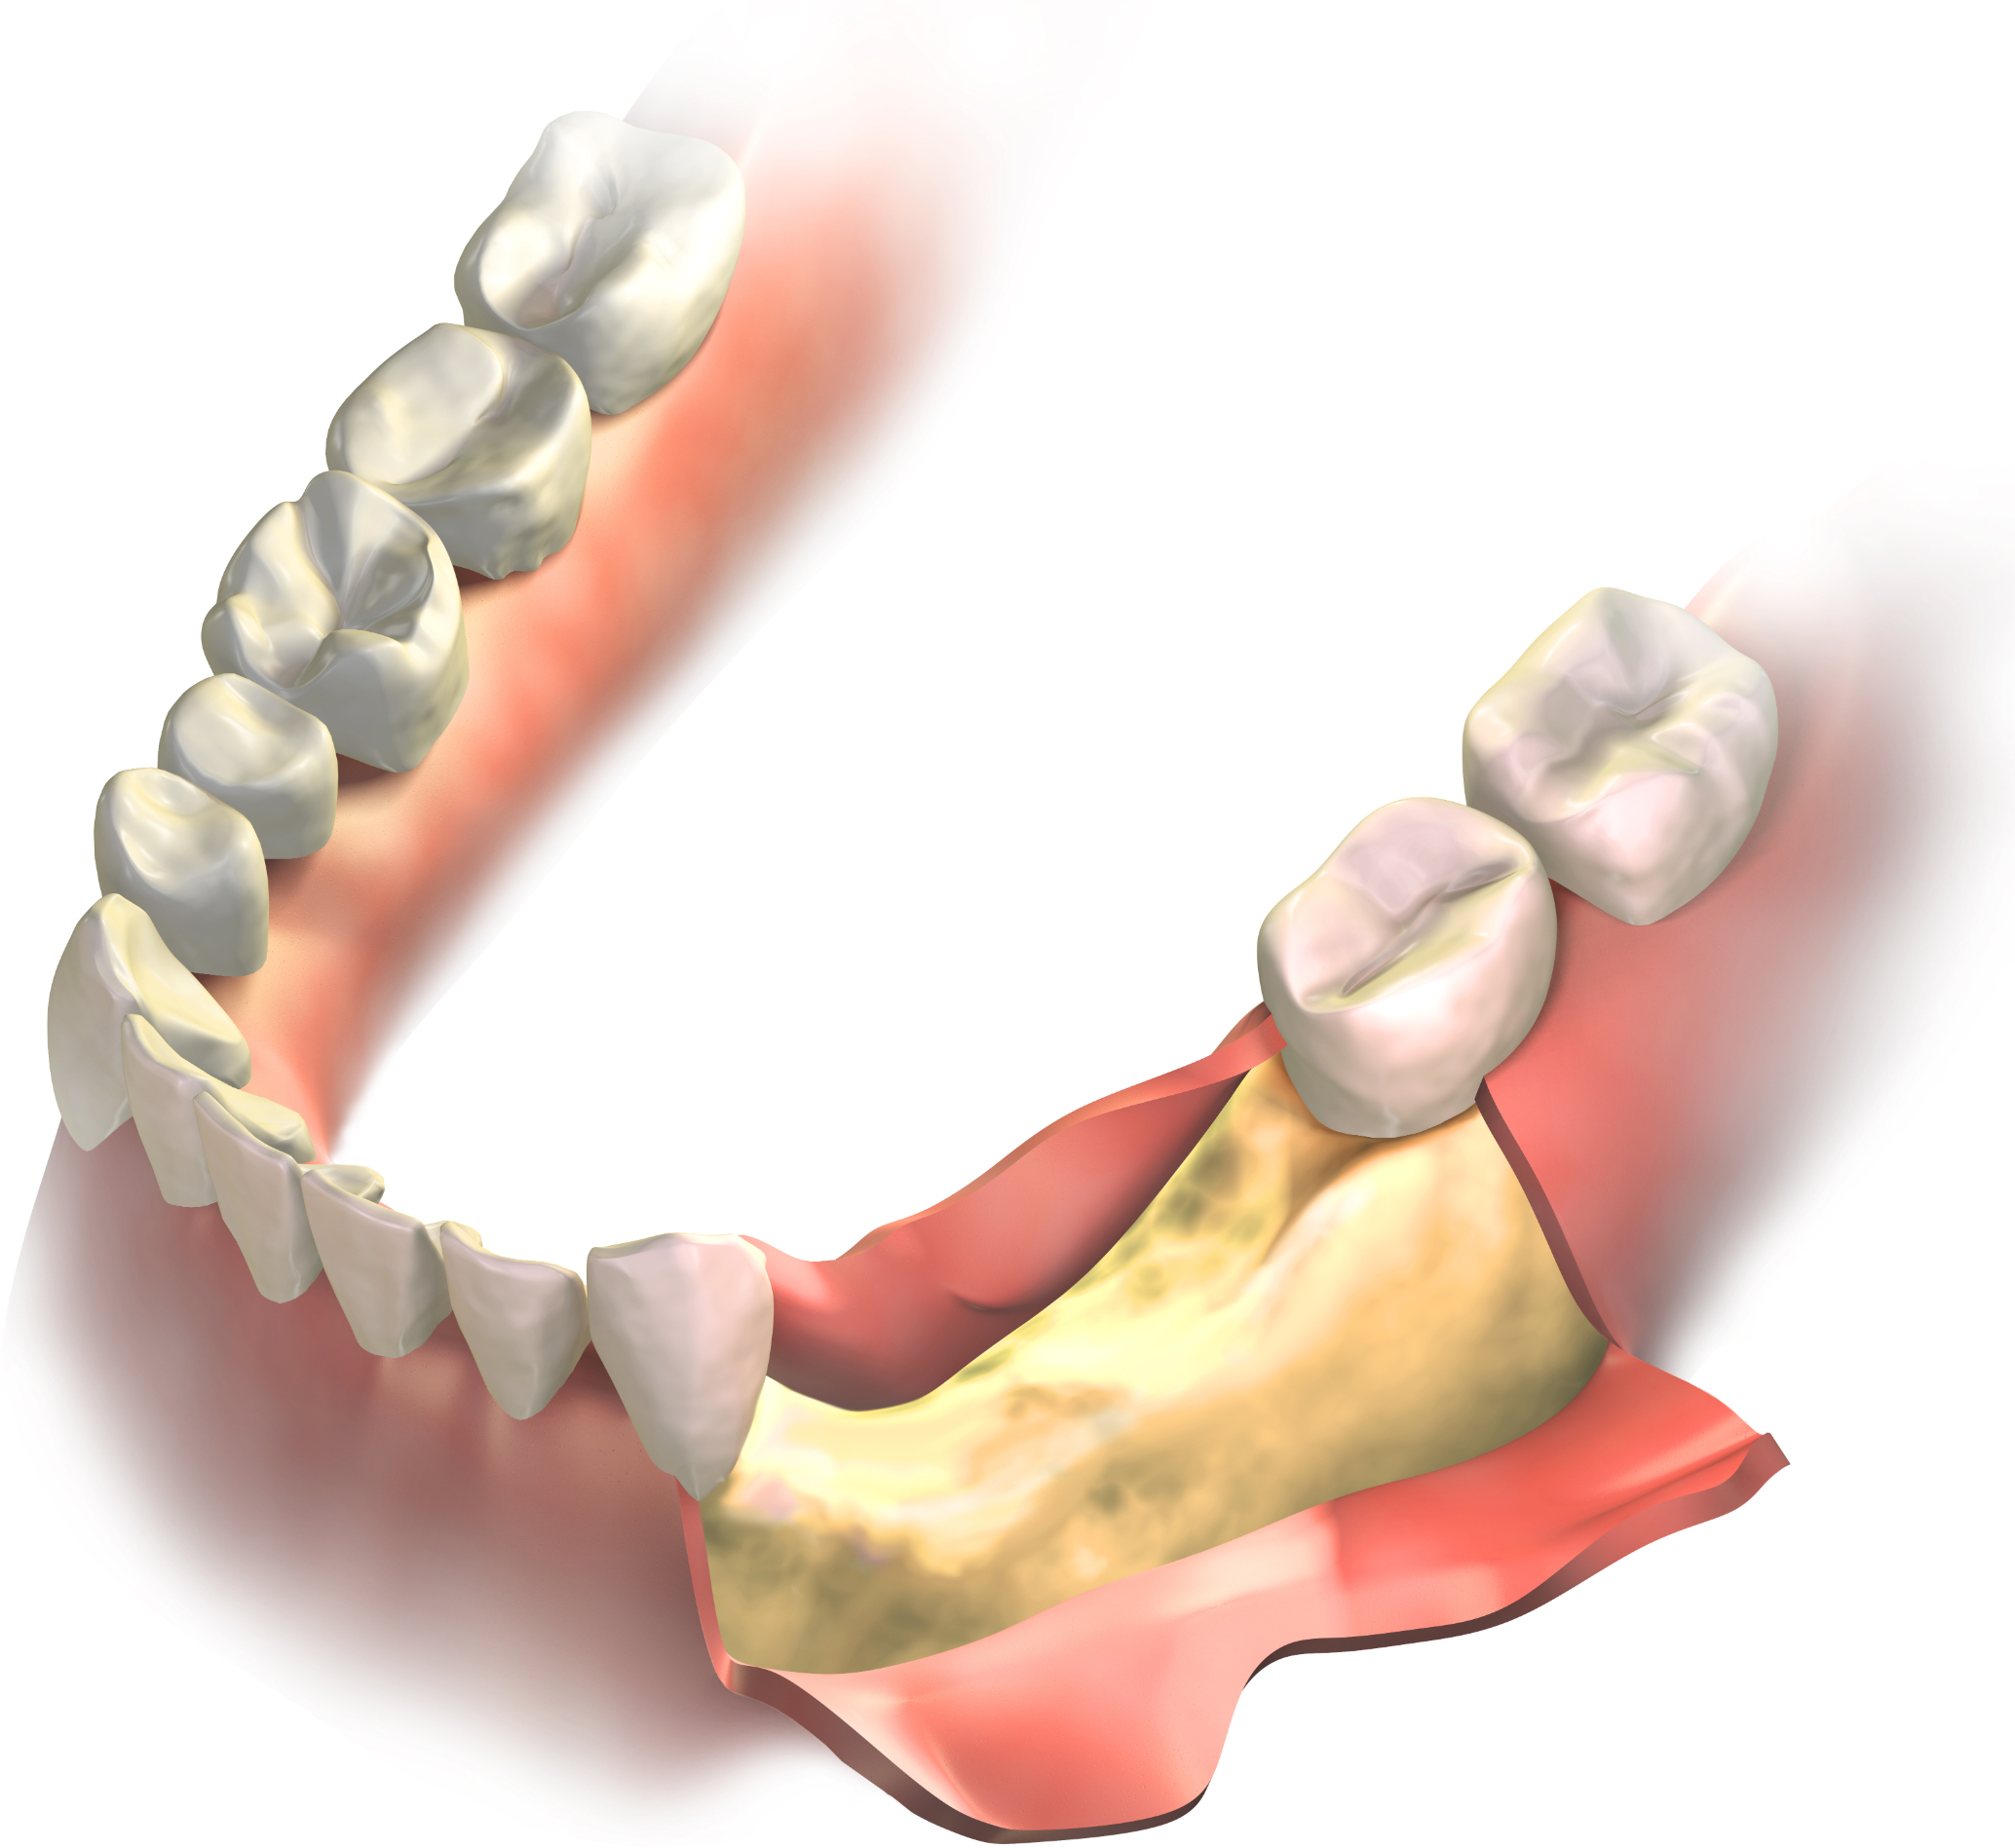 Bone loss on lower jaw (gums opened to expose bone before grafting surgery)